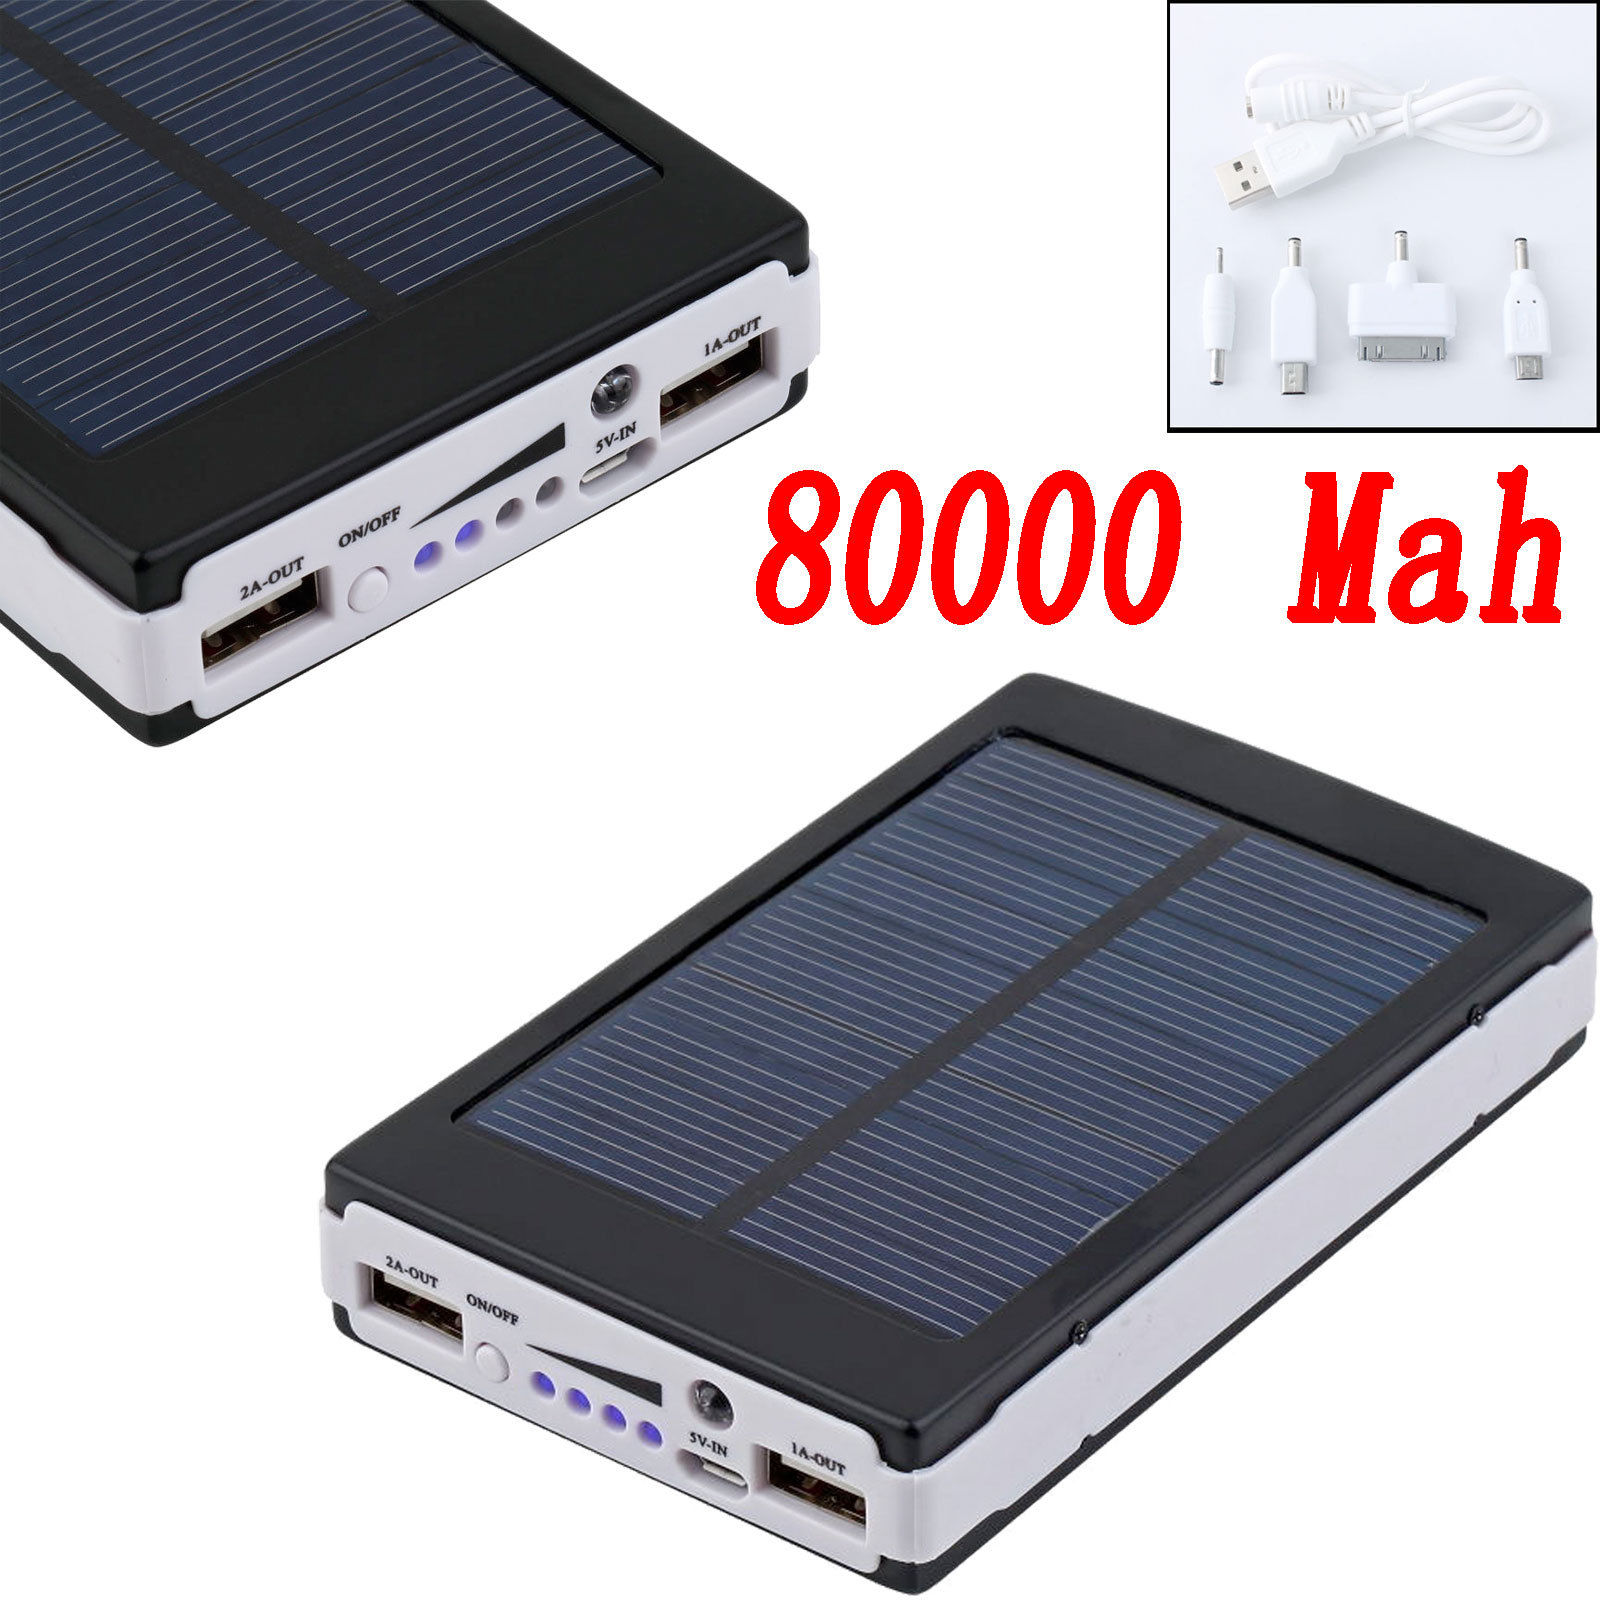 Black 80000mah Dual Usb Portable Solar Battery Charger